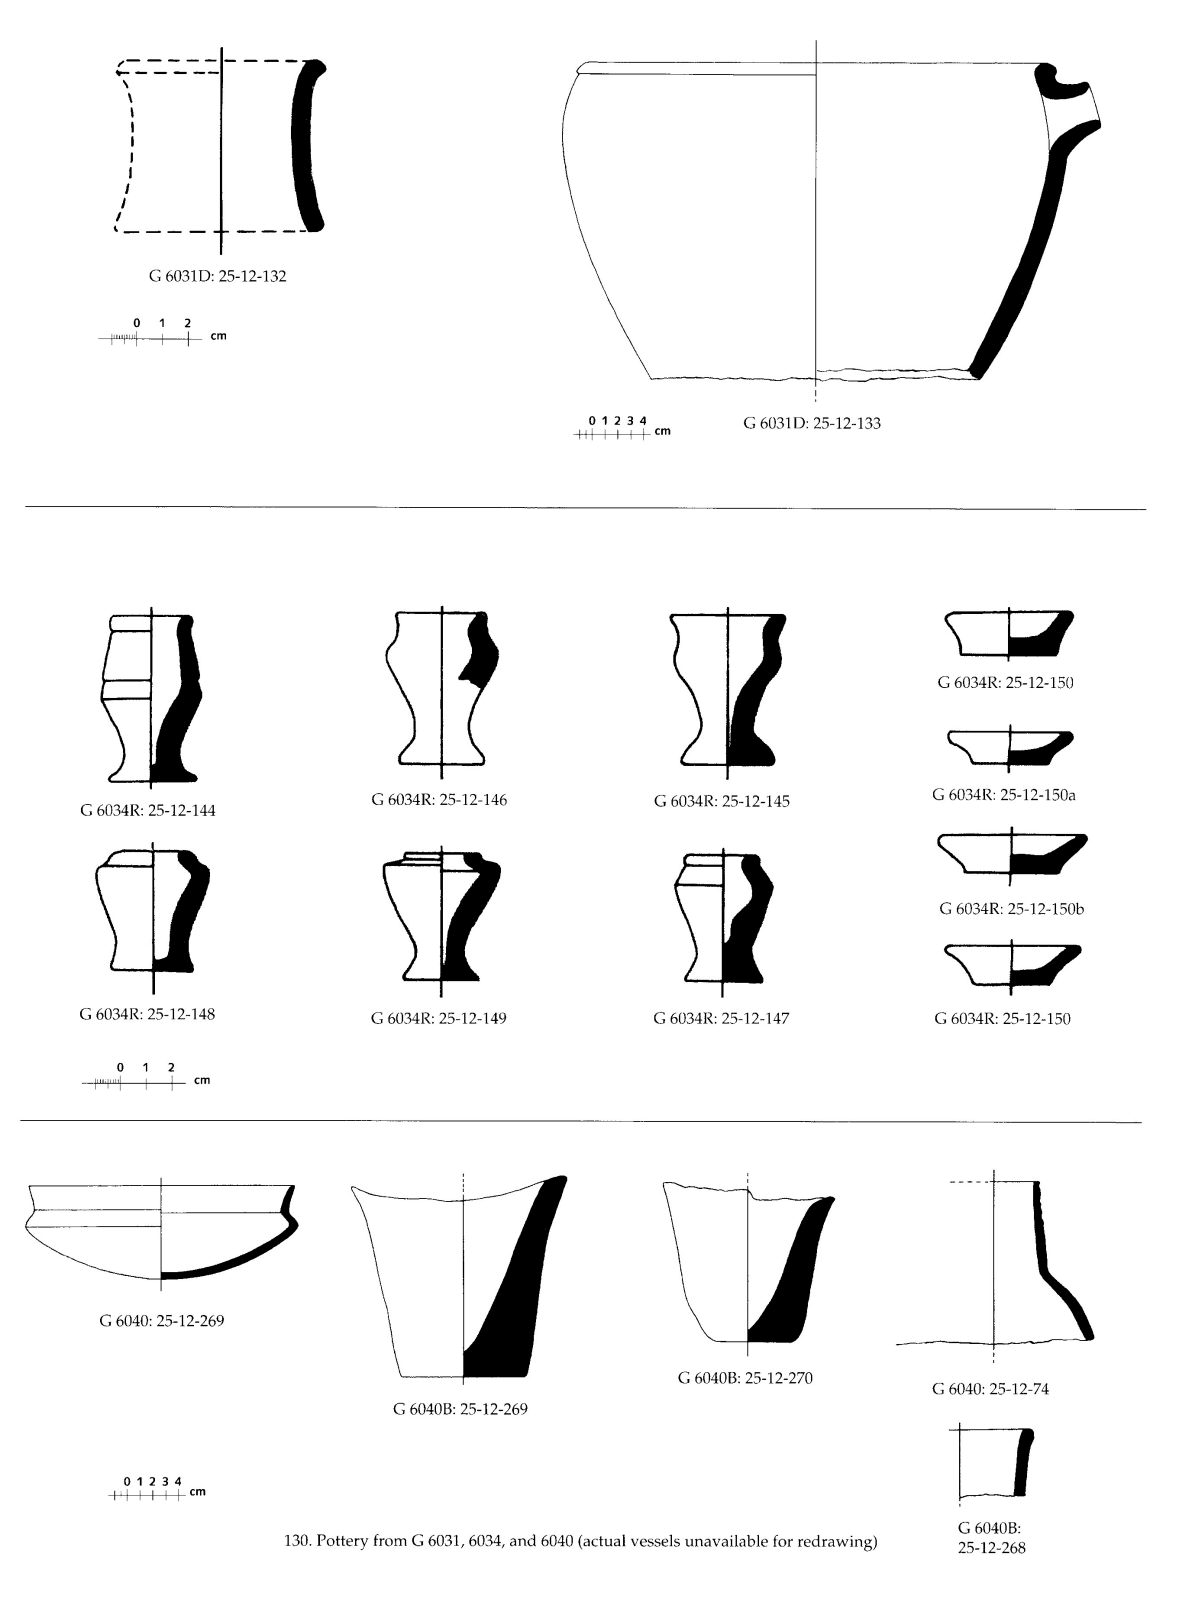 Drawings: Pottery from G 6031, G 6034, Shaft R, G 6040, G 6051, Shaft A,